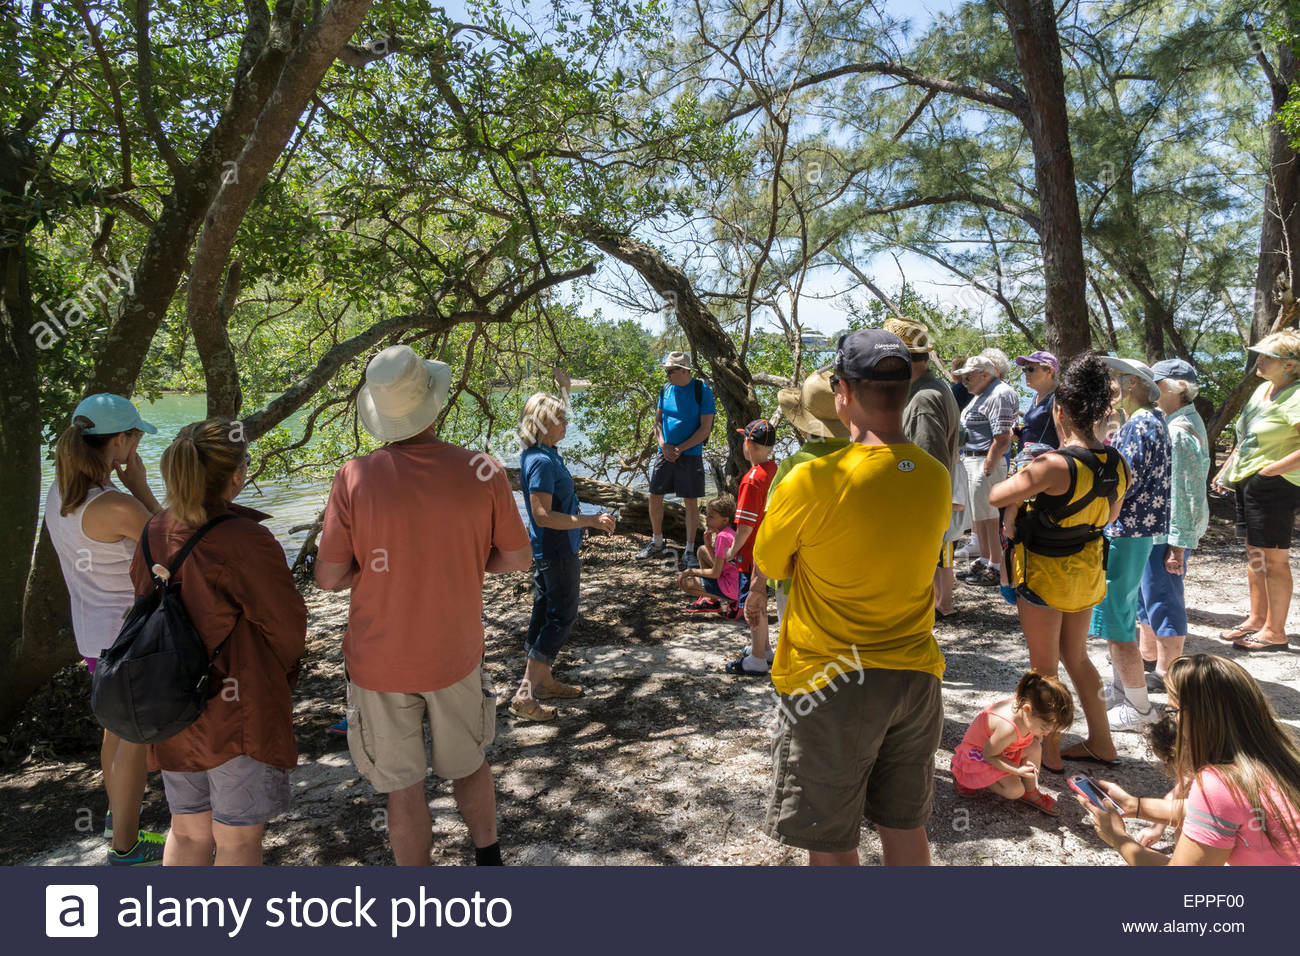 A volunteer naturalist talks to an eco-tour group on an uninhabited island on Sarasota Bay in Sarasota, Florida - Stock Image